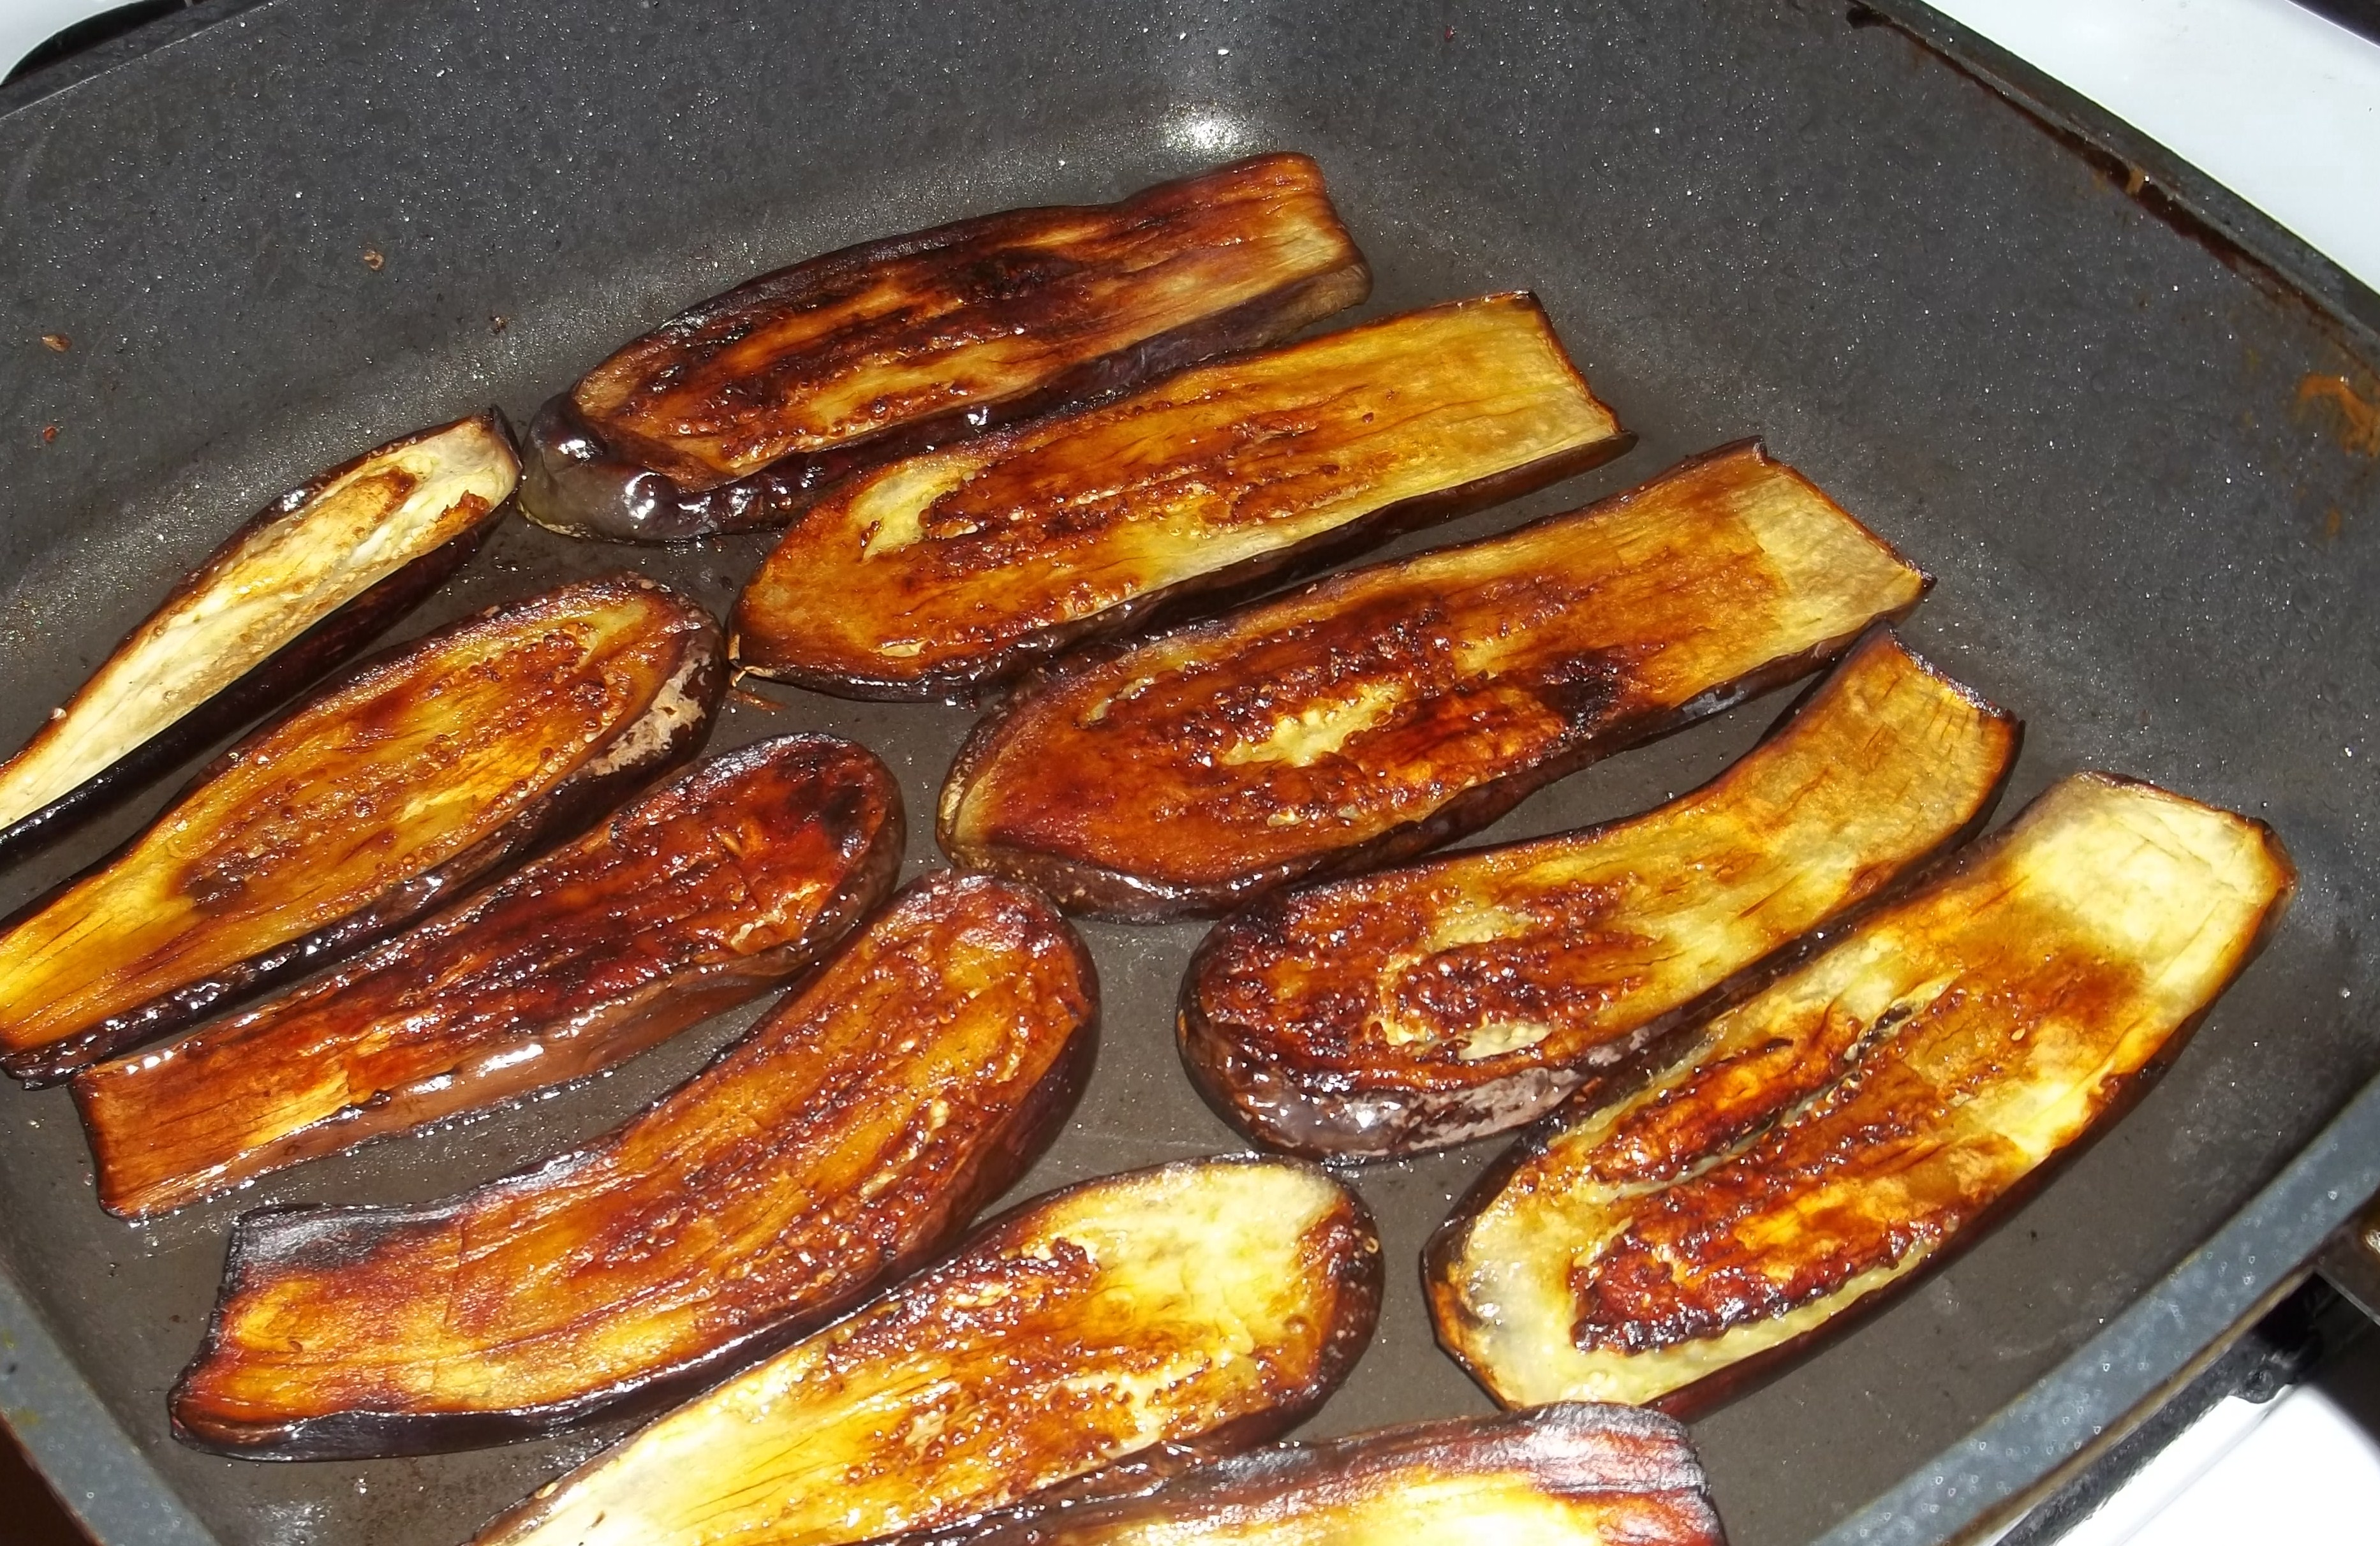 How To Cook Eggplant On Skillet